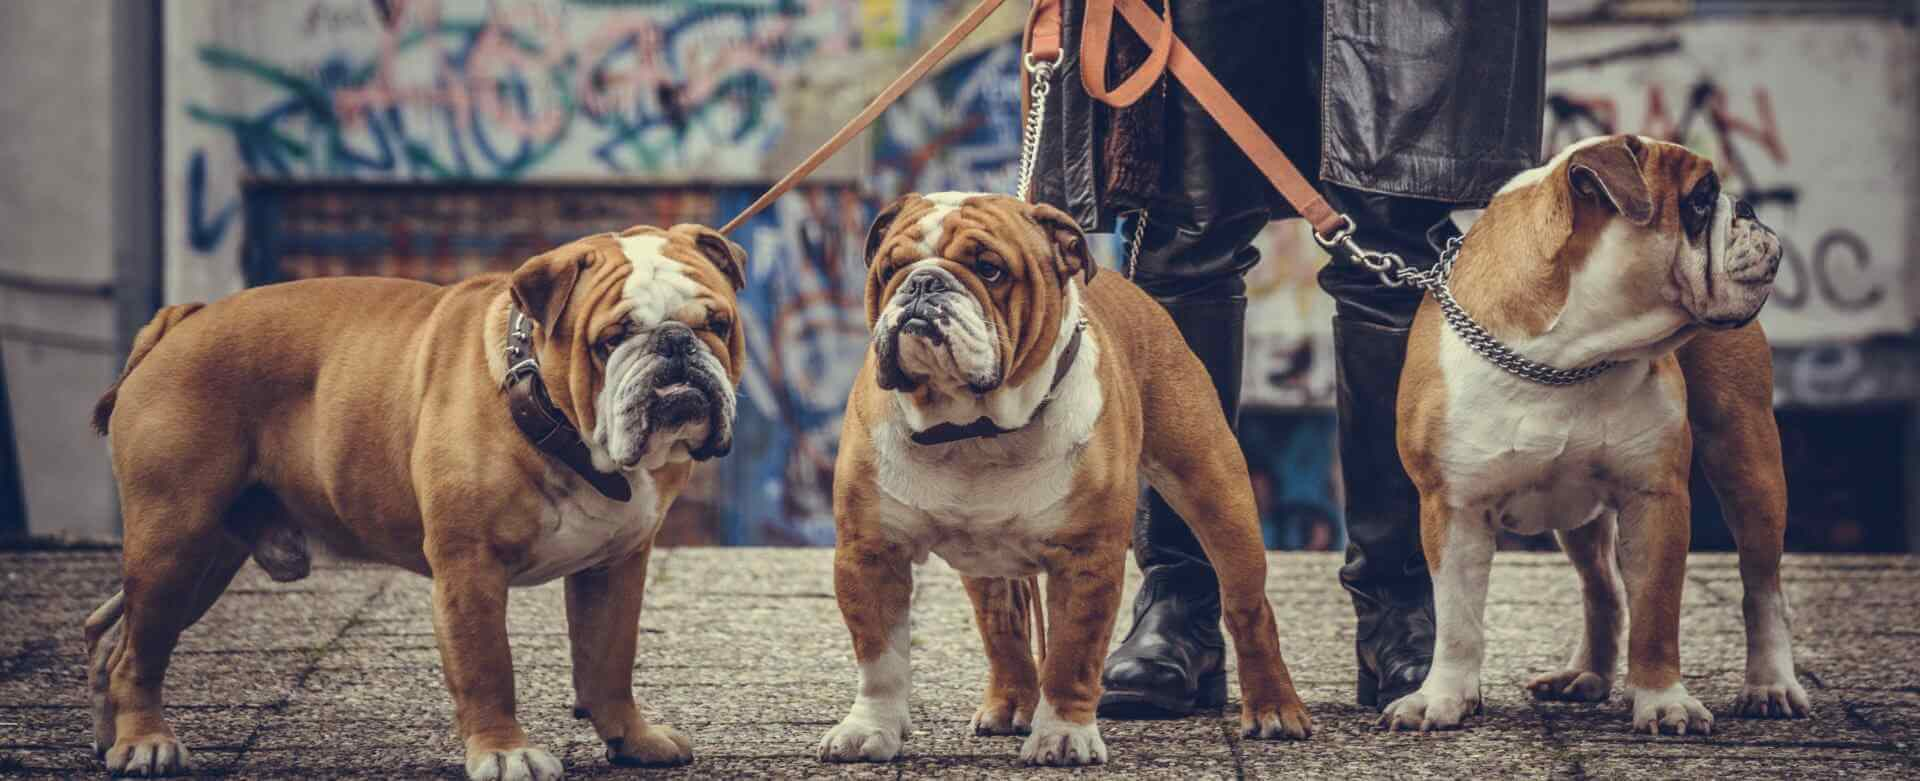 three adult English bulldogs posing outdoor